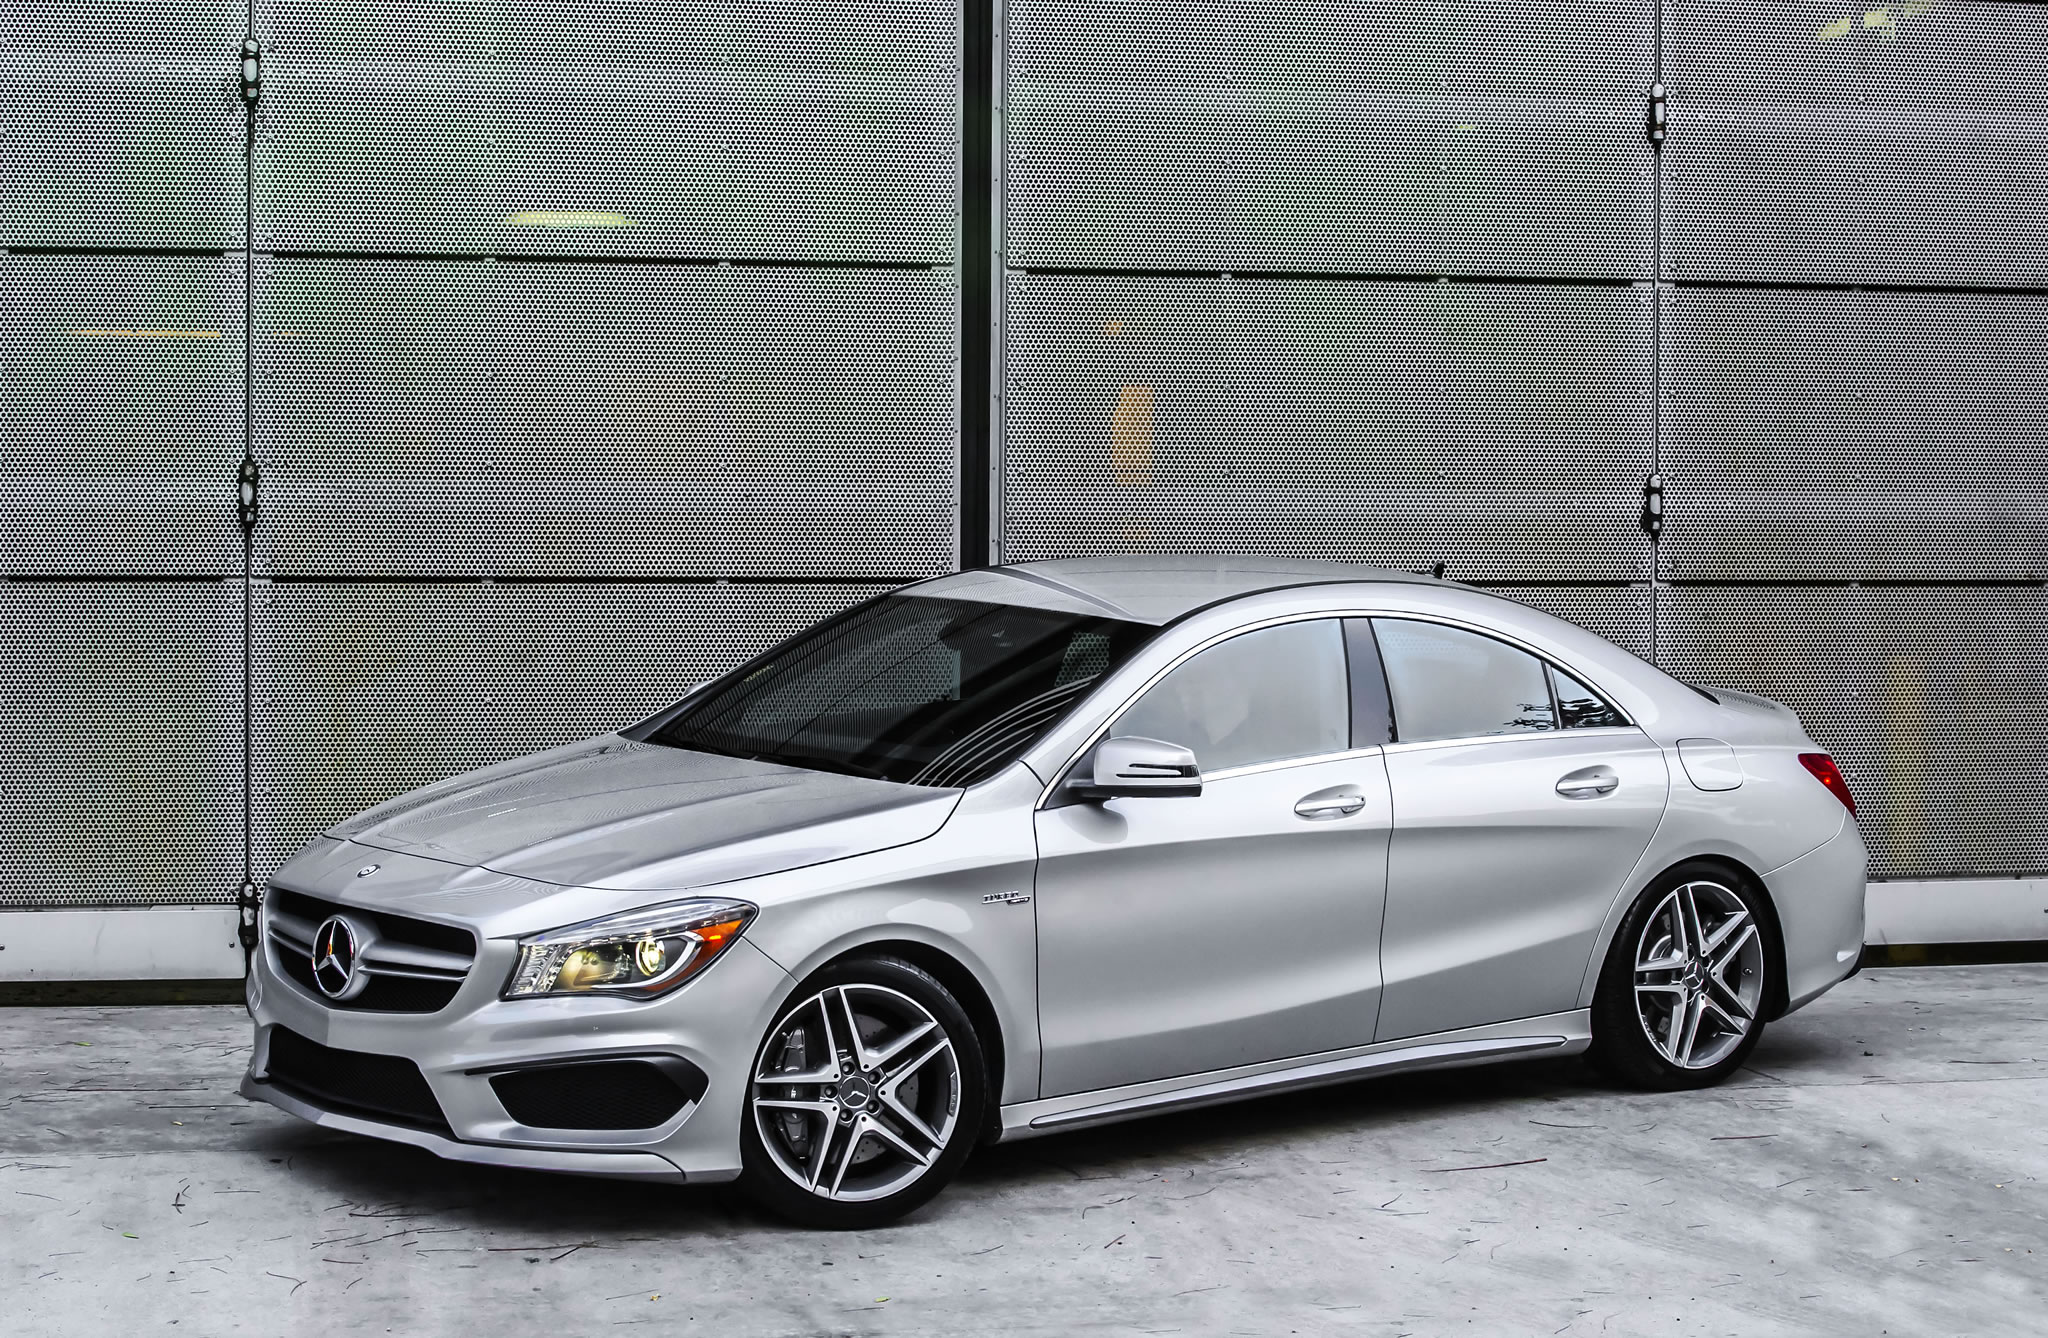 2014 mercedes benz cla45 amg front photo polar silver for Mercedes benz creator